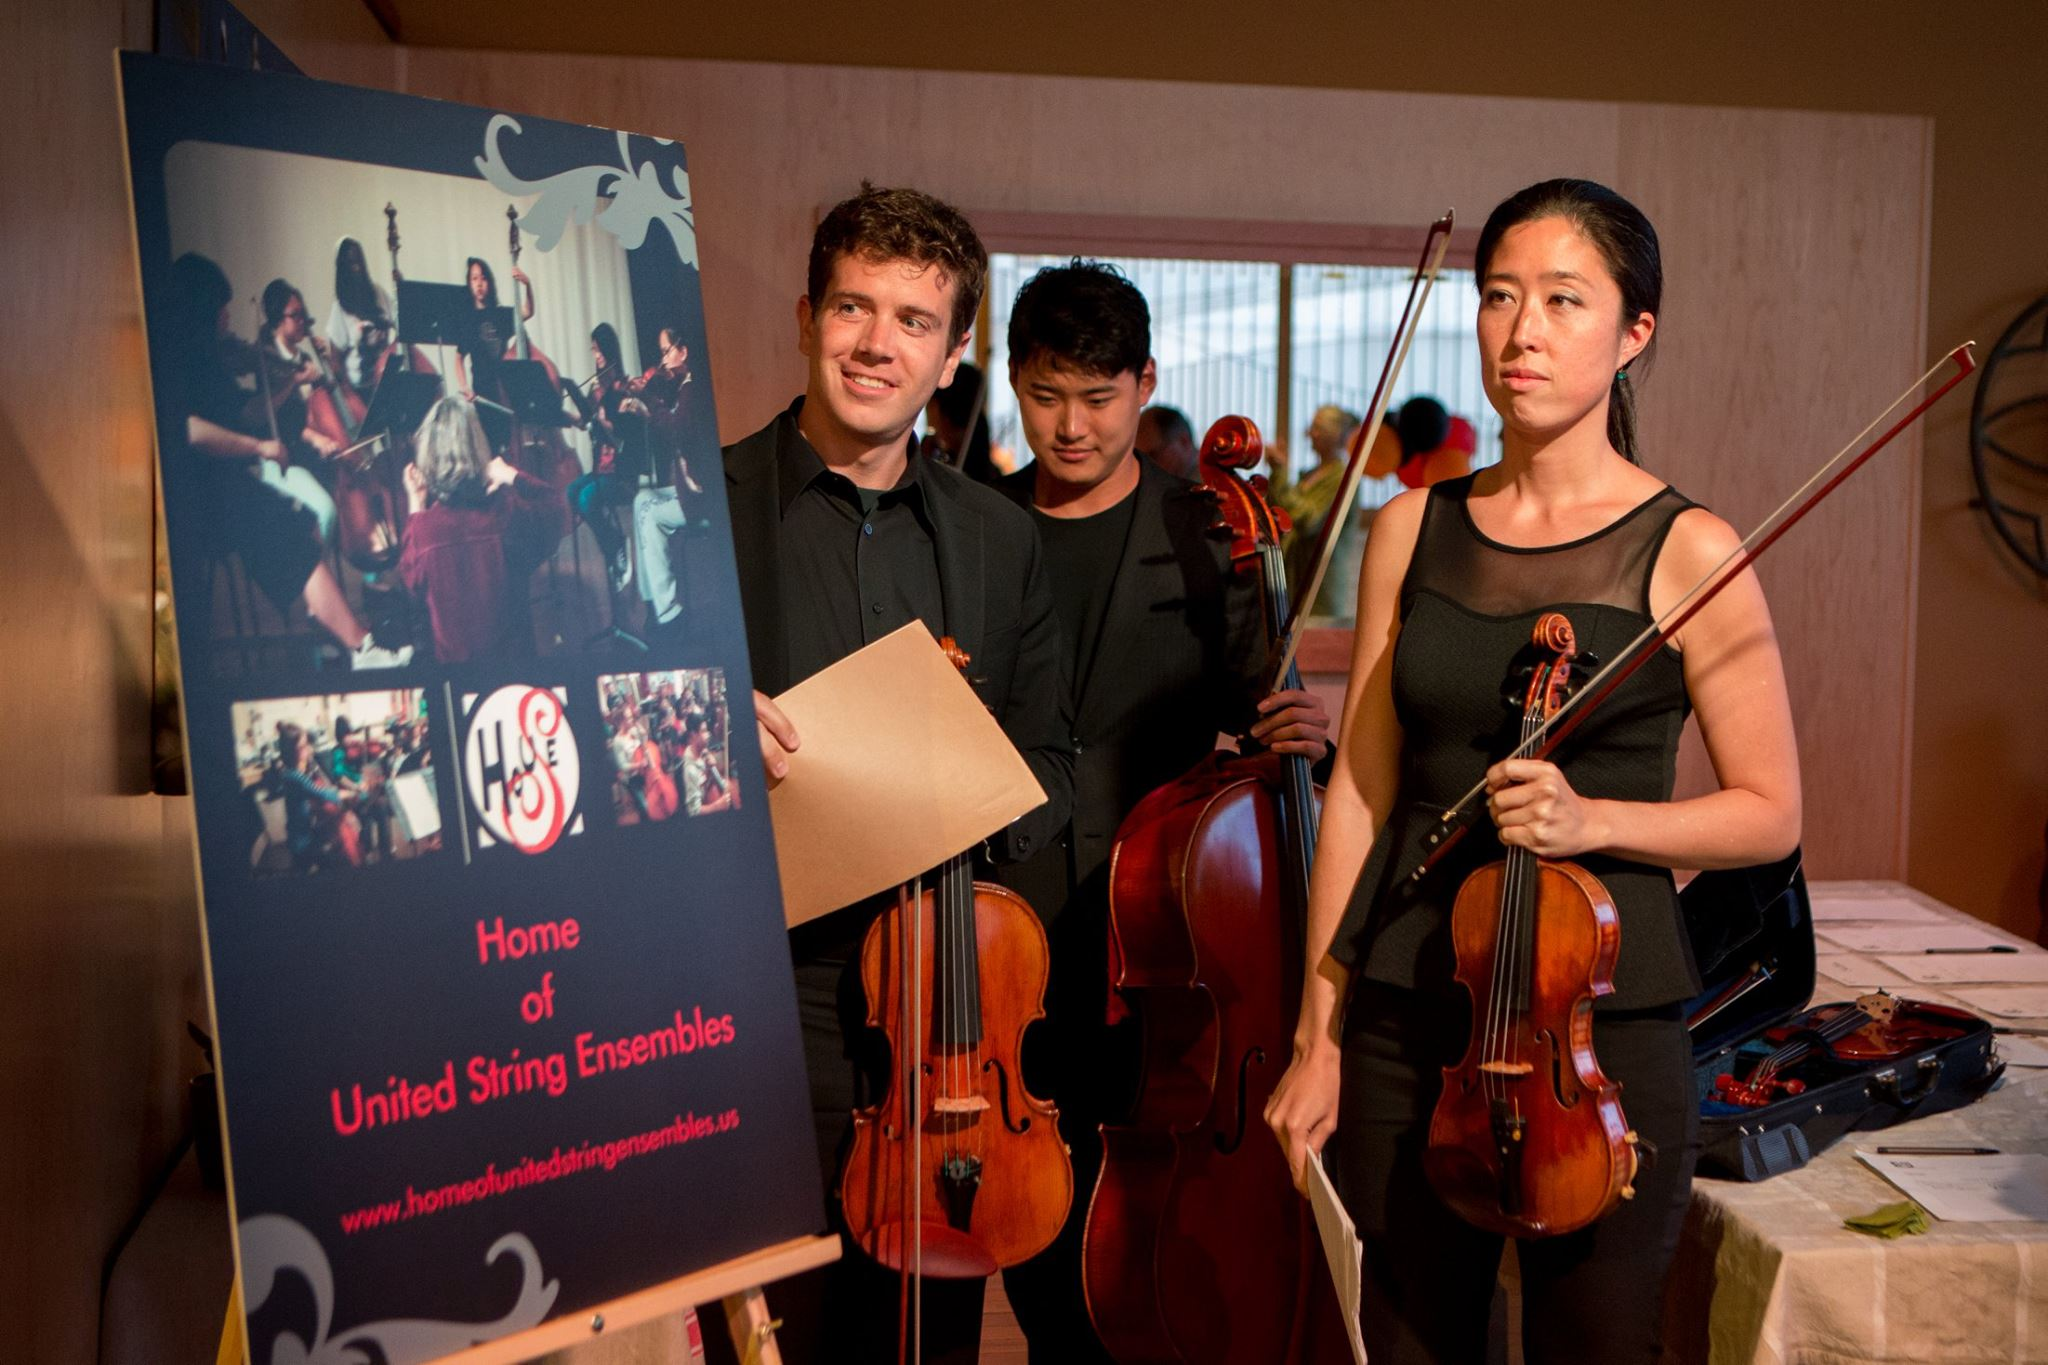 Benefit concert for Oakland based org providing music education to middle schoolers